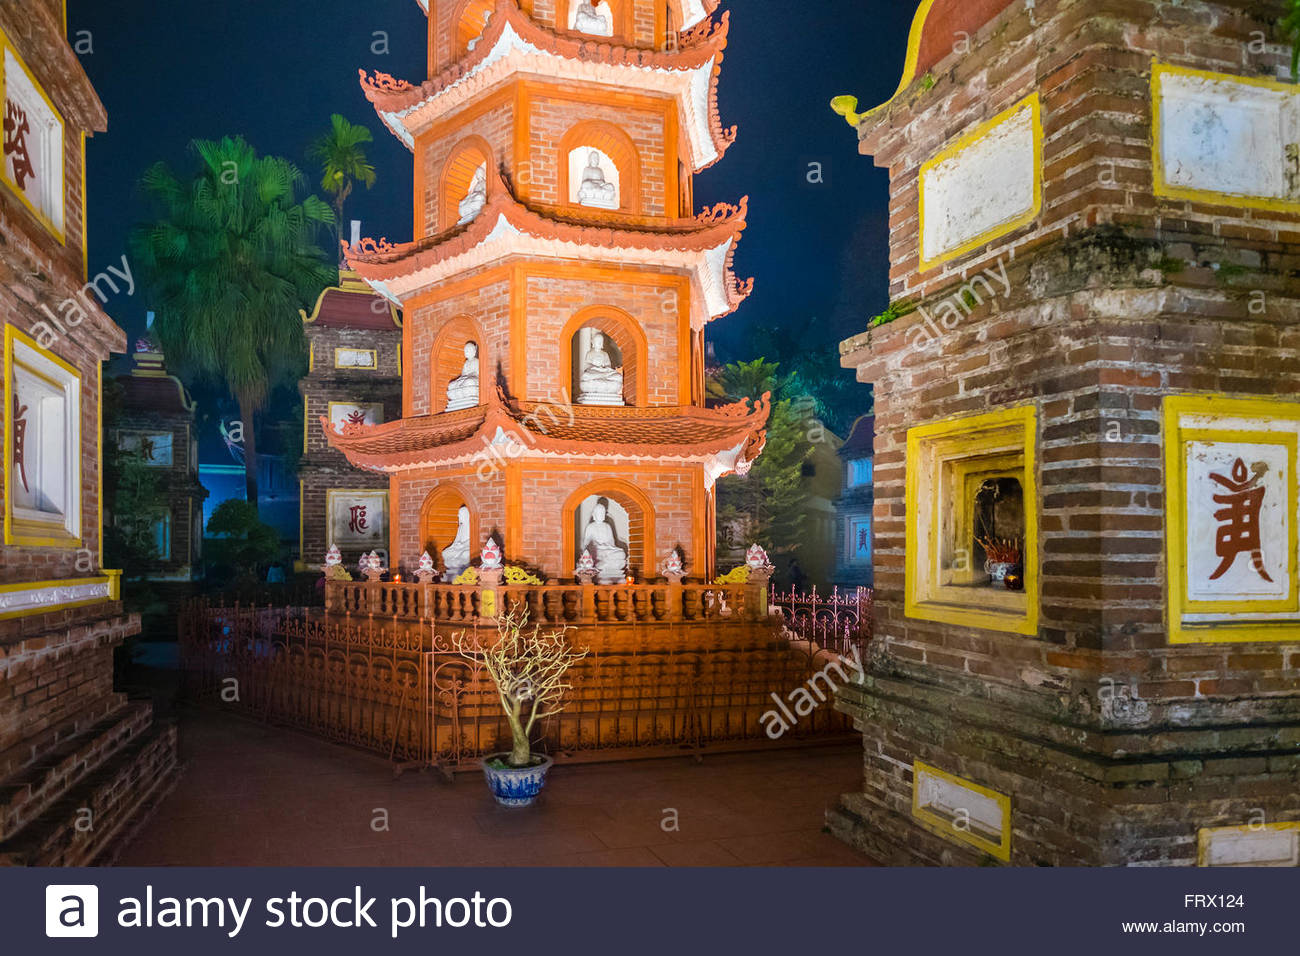 Tran Quoc Pagoda (Chua Tran Quoc) at night, Tay Ho District, Hanoi, Vietnam - Stock Image